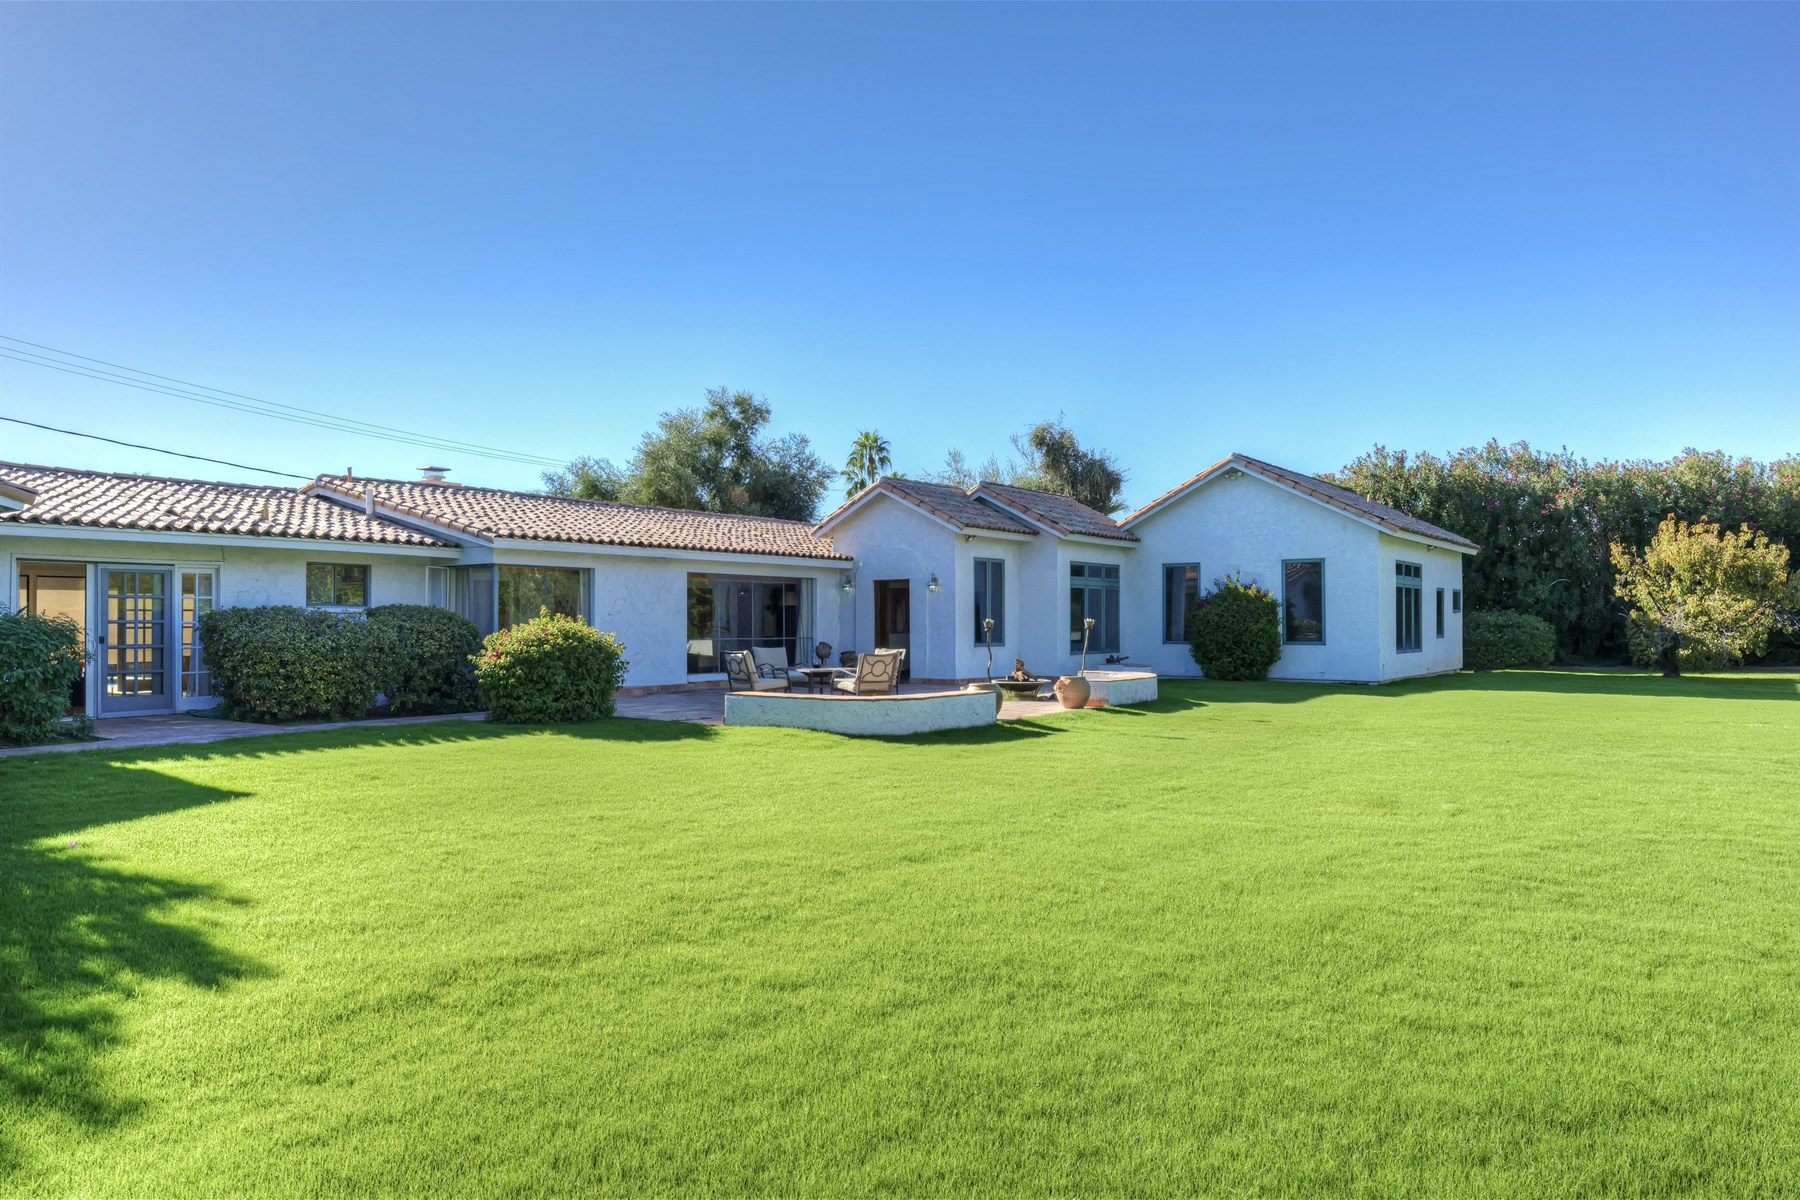 Single Family Home for Sale at Charming and expansive Arcadia home 4737 E Exeter Blvd Phoenix, Arizona 85018 United States